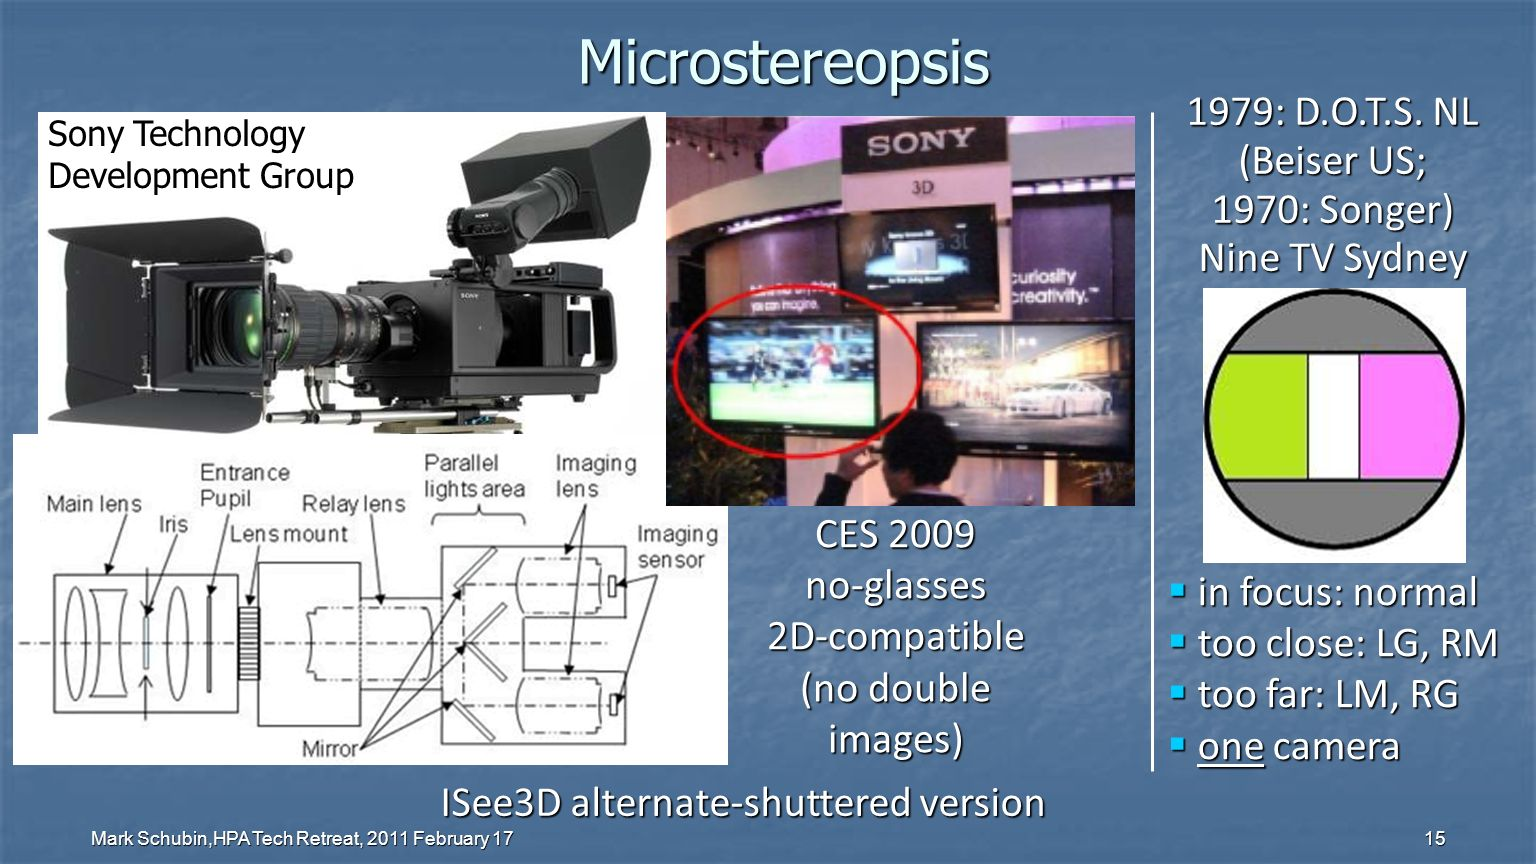 Mark Schubin,HPA Tech Retreat, 2011 February 17 14 Limited Stereopsis reference: Canon XJ22x7.3 compact studio lens 165 mm wide box Canon 3D lens, shown on XL1 DXG-321 much narrower than pupillary distance Sharp 3D module Hammacher-Schlemmer Panasonic VW-CLT1 3D conversion lens (outer width 58 mm) lens adaptor